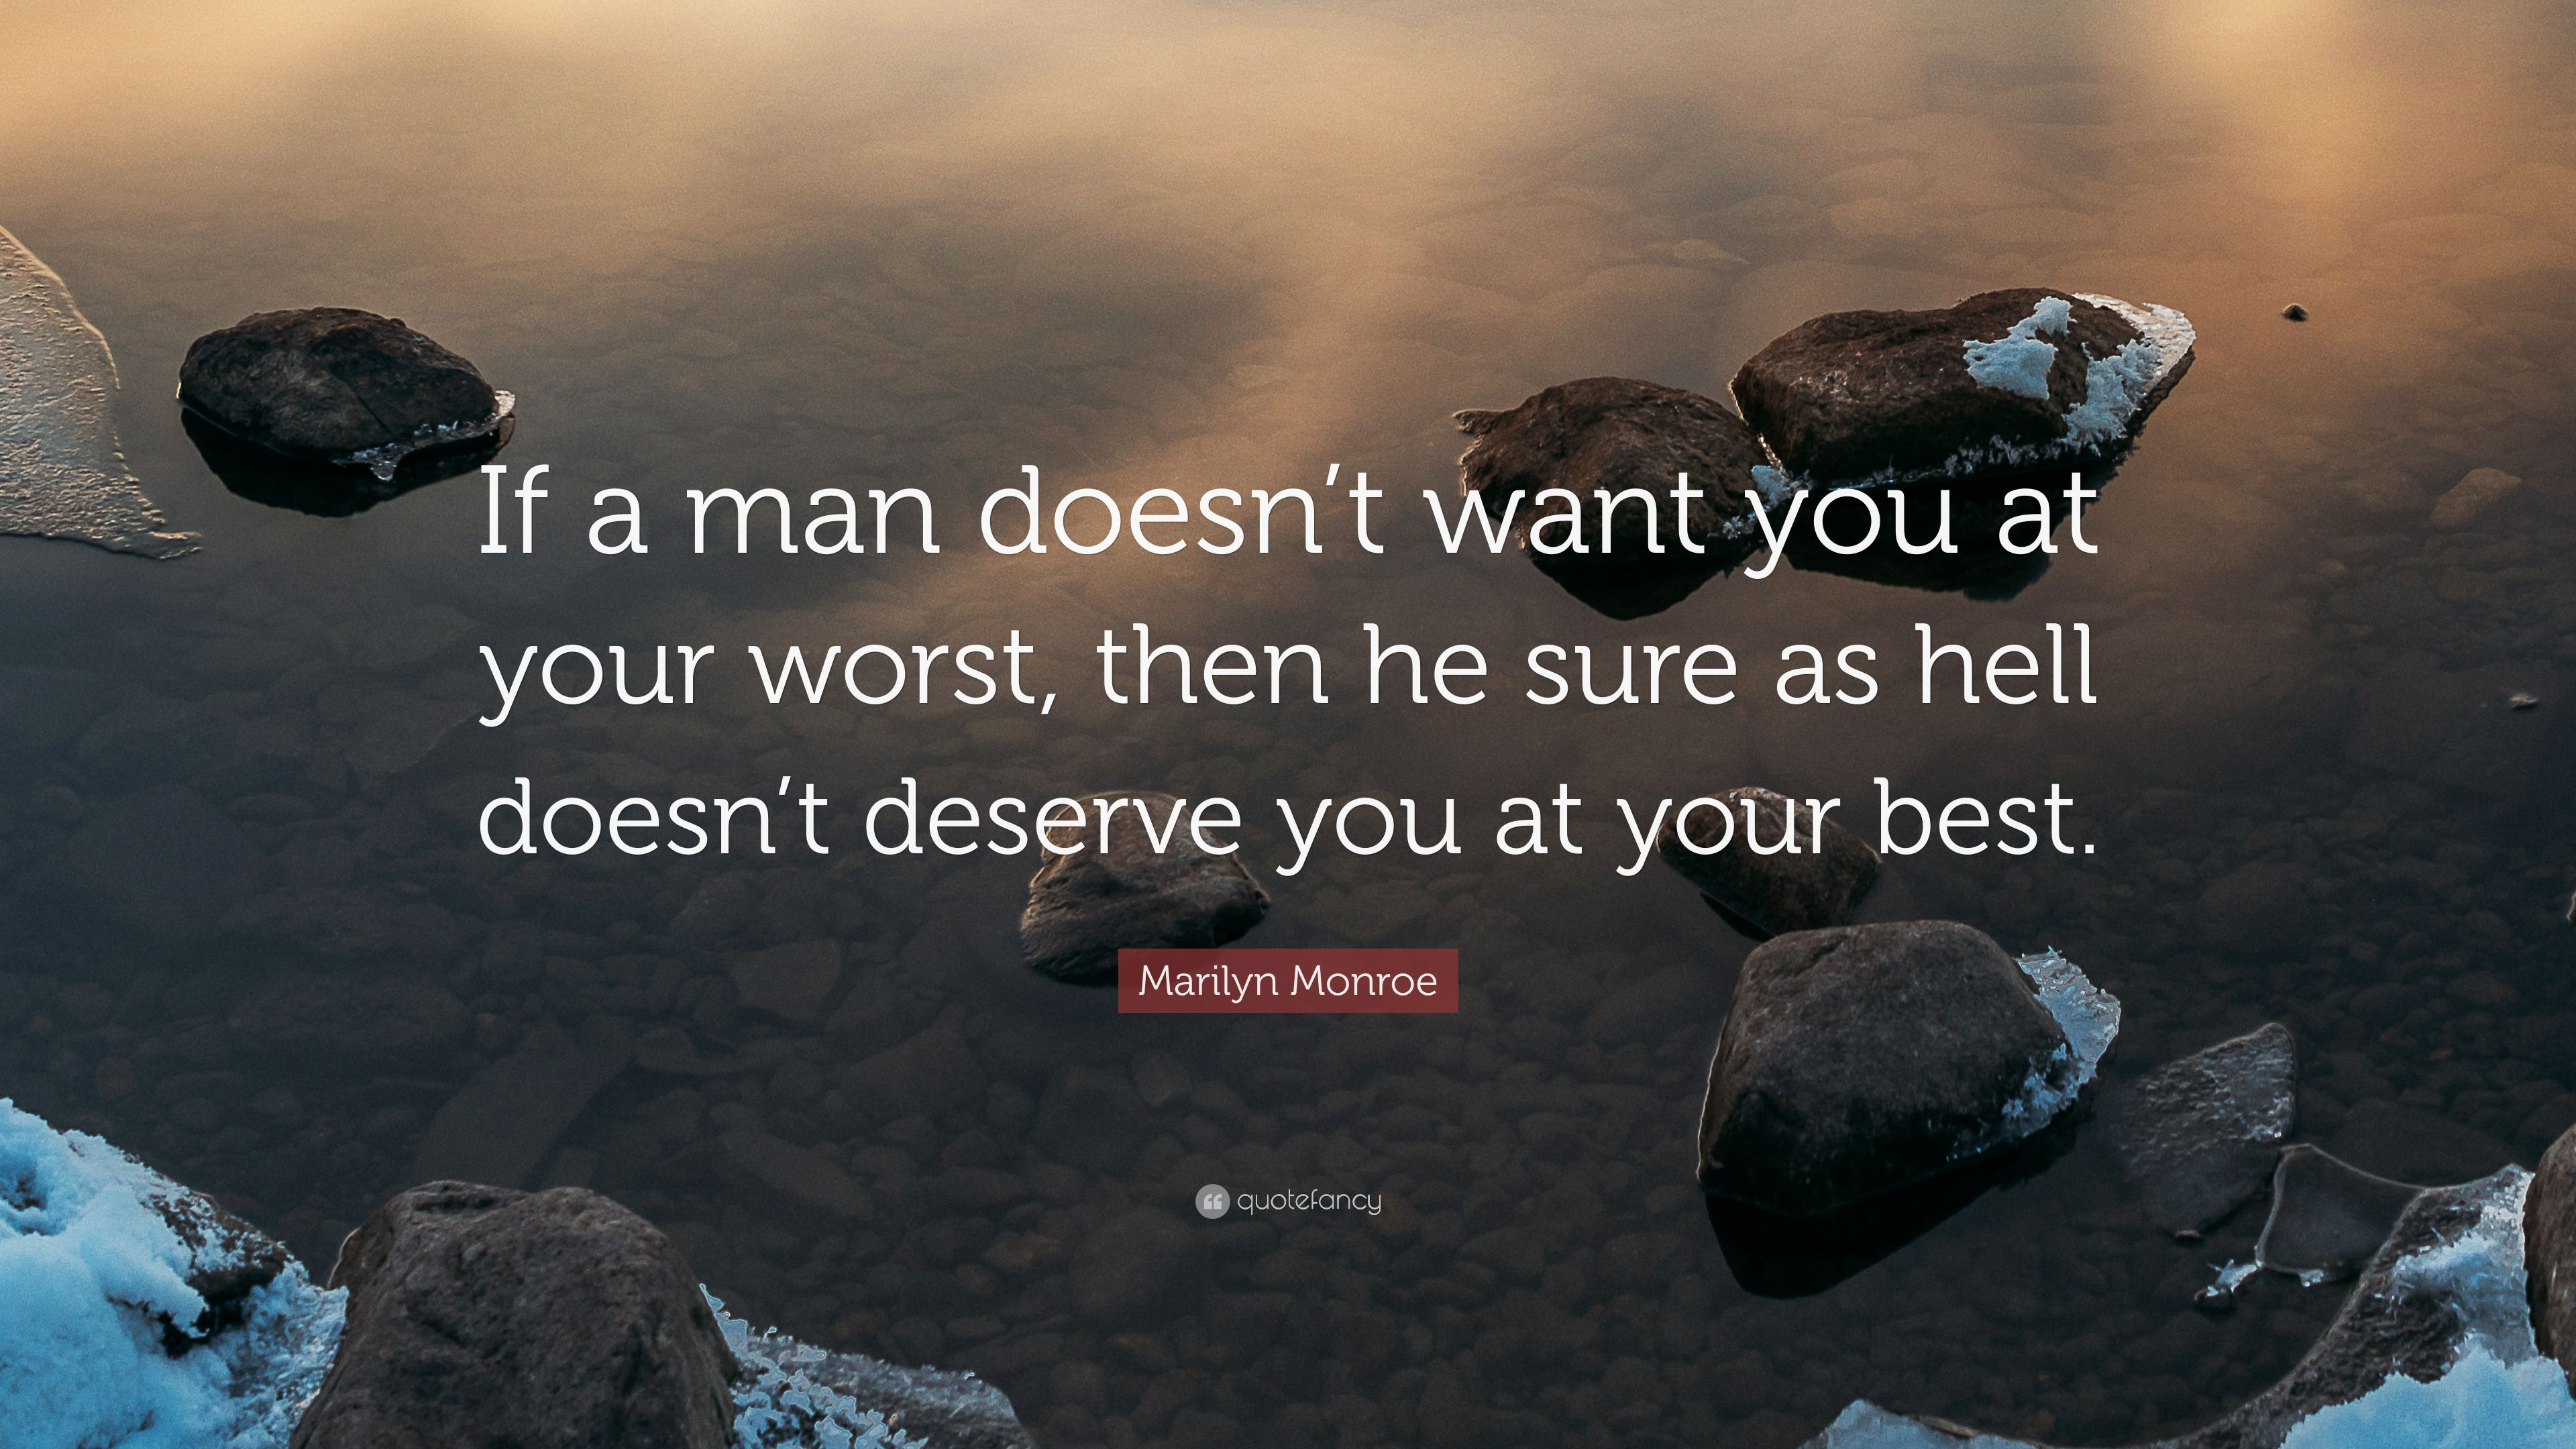 Marilyn Monroe Quote If A Man Doesnt Want You At Your Worst Then